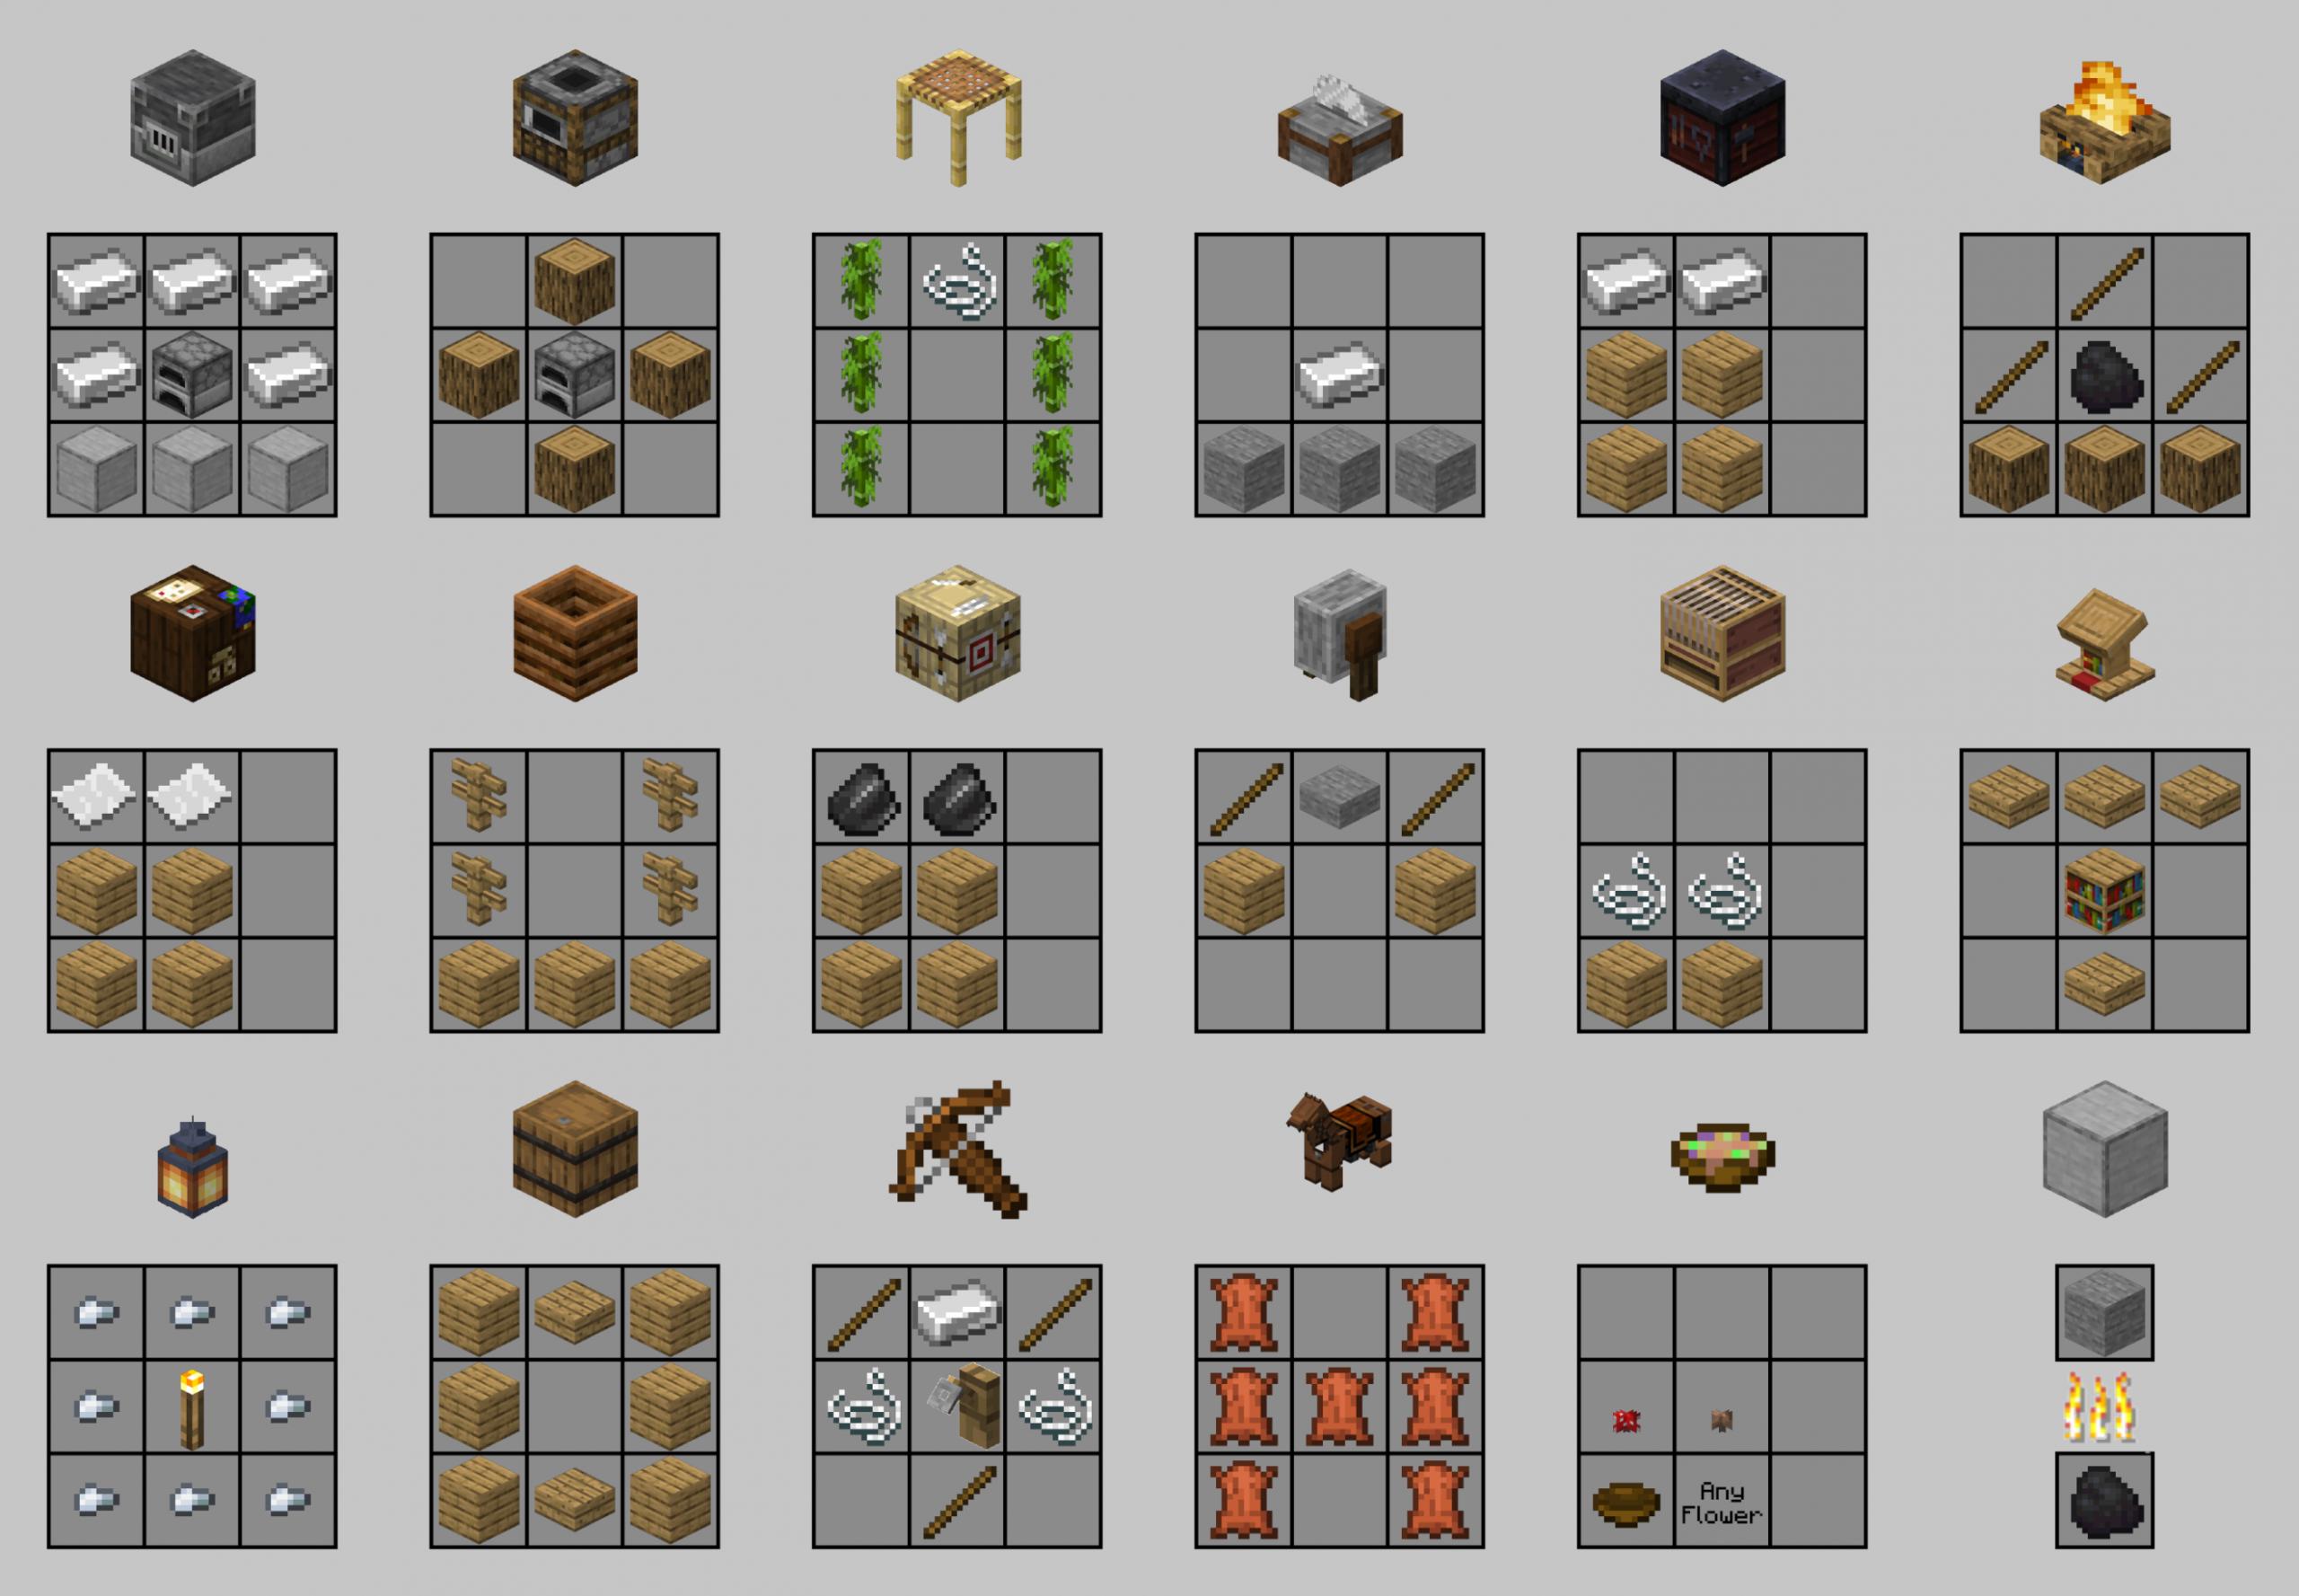 image of crafting recipes for the new items from 11.111 ..